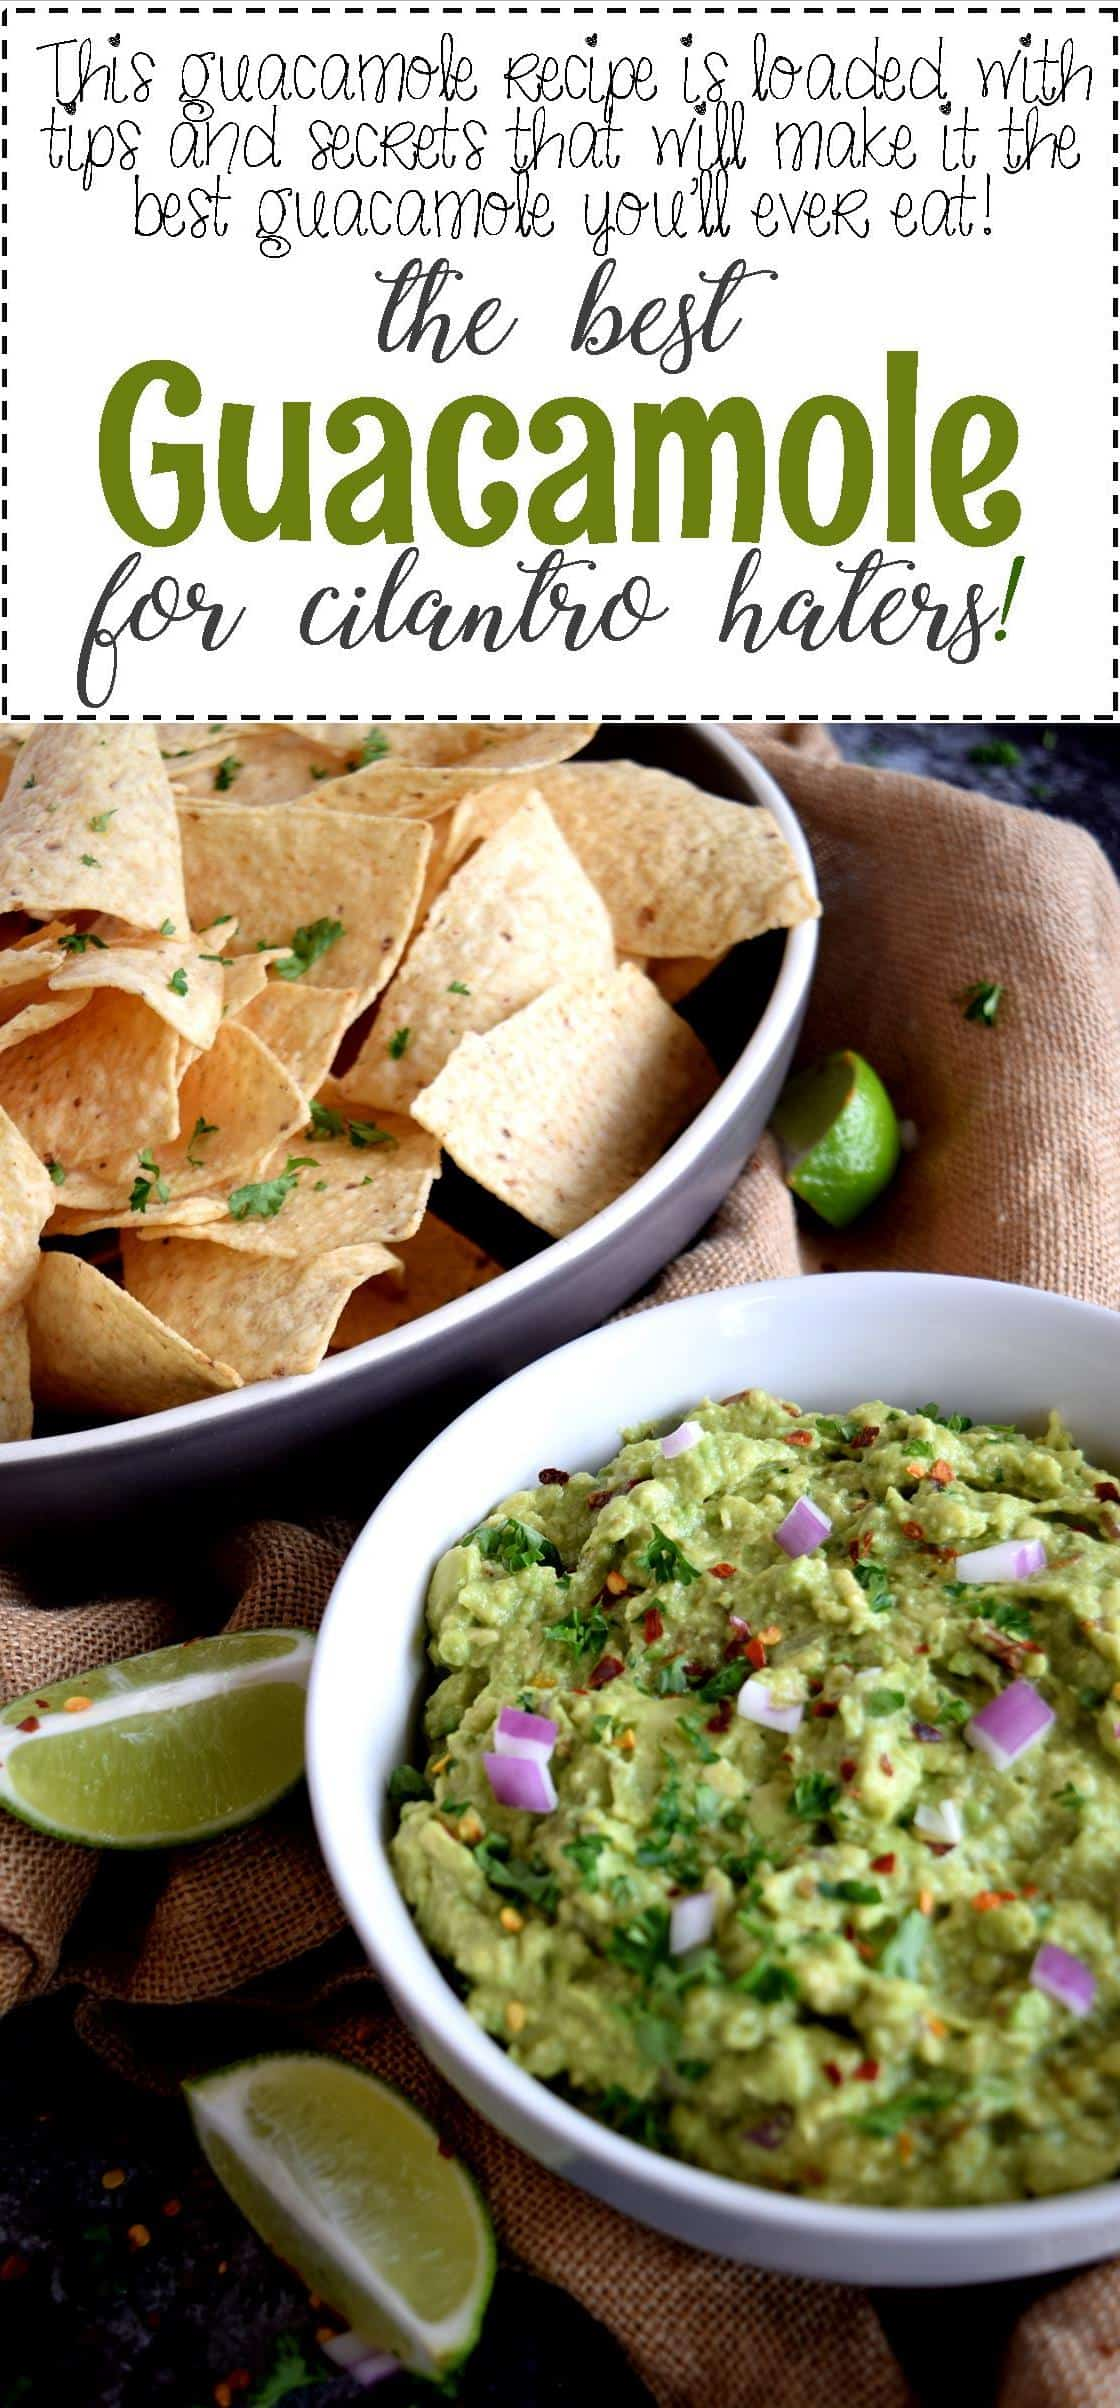 Guacamole for cilantro haters lord byrons kitchen yes this recipe is for all of us foodies who absolutely despise the use of cilantro in our food but get this this guacamole has cilantro in it forumfinder Images